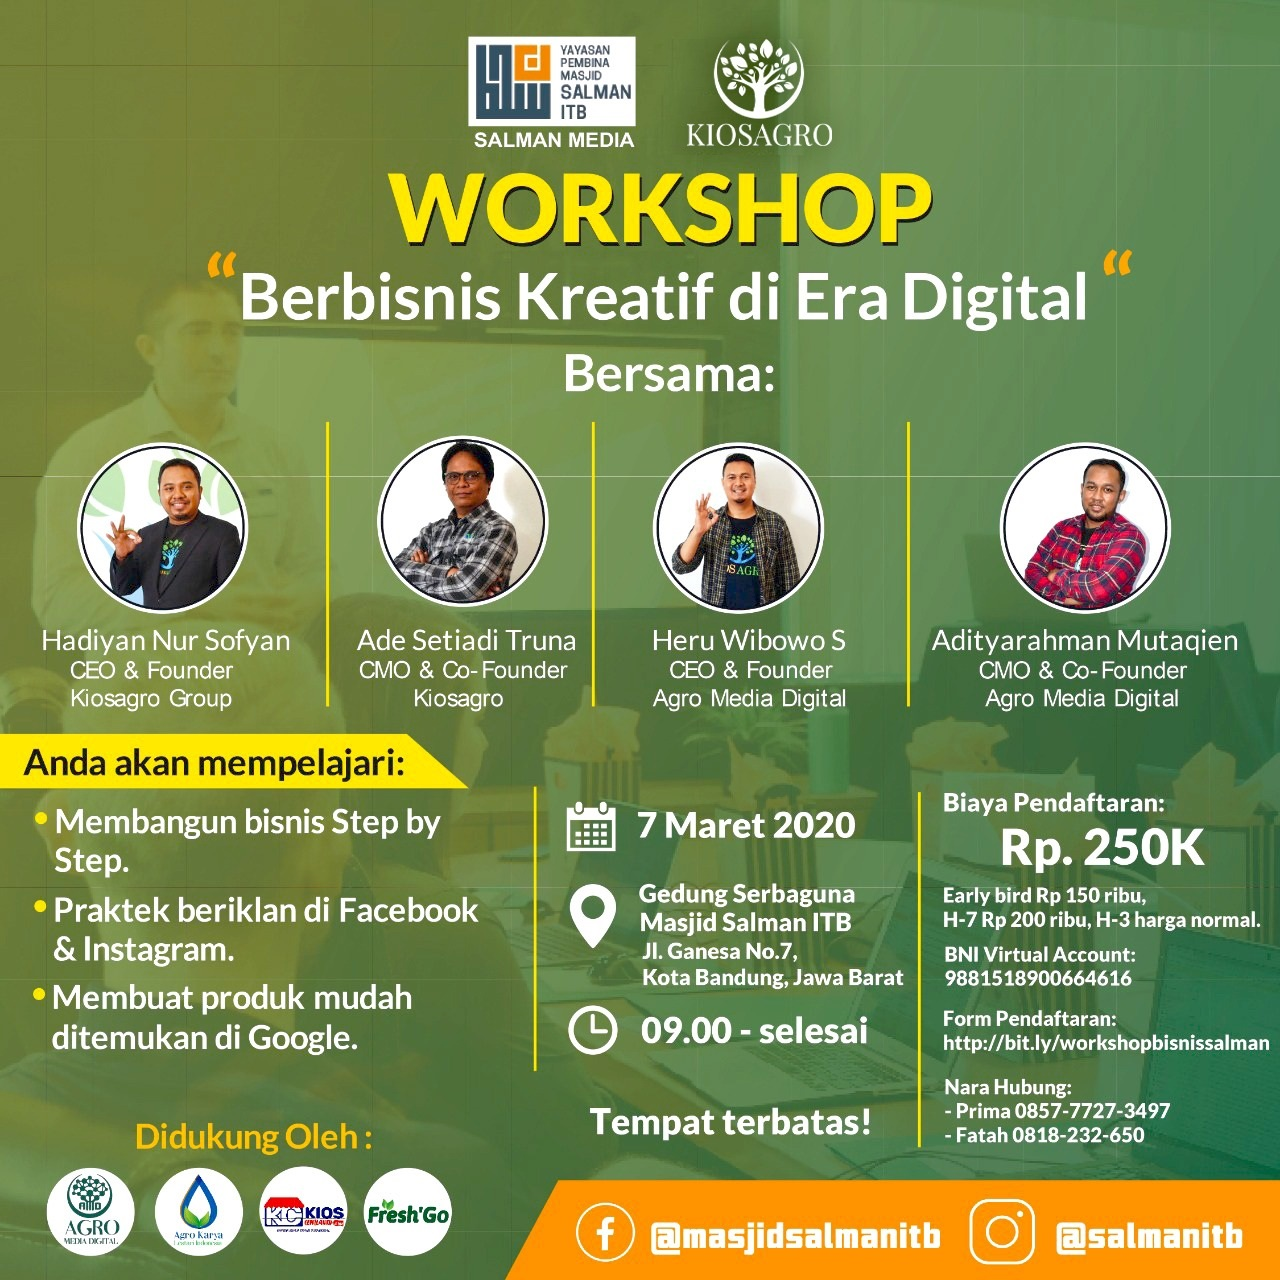 Workshop Berbisnis Kreatif di Era Digital 2020 Salman ITB Salman Media Kiosagro